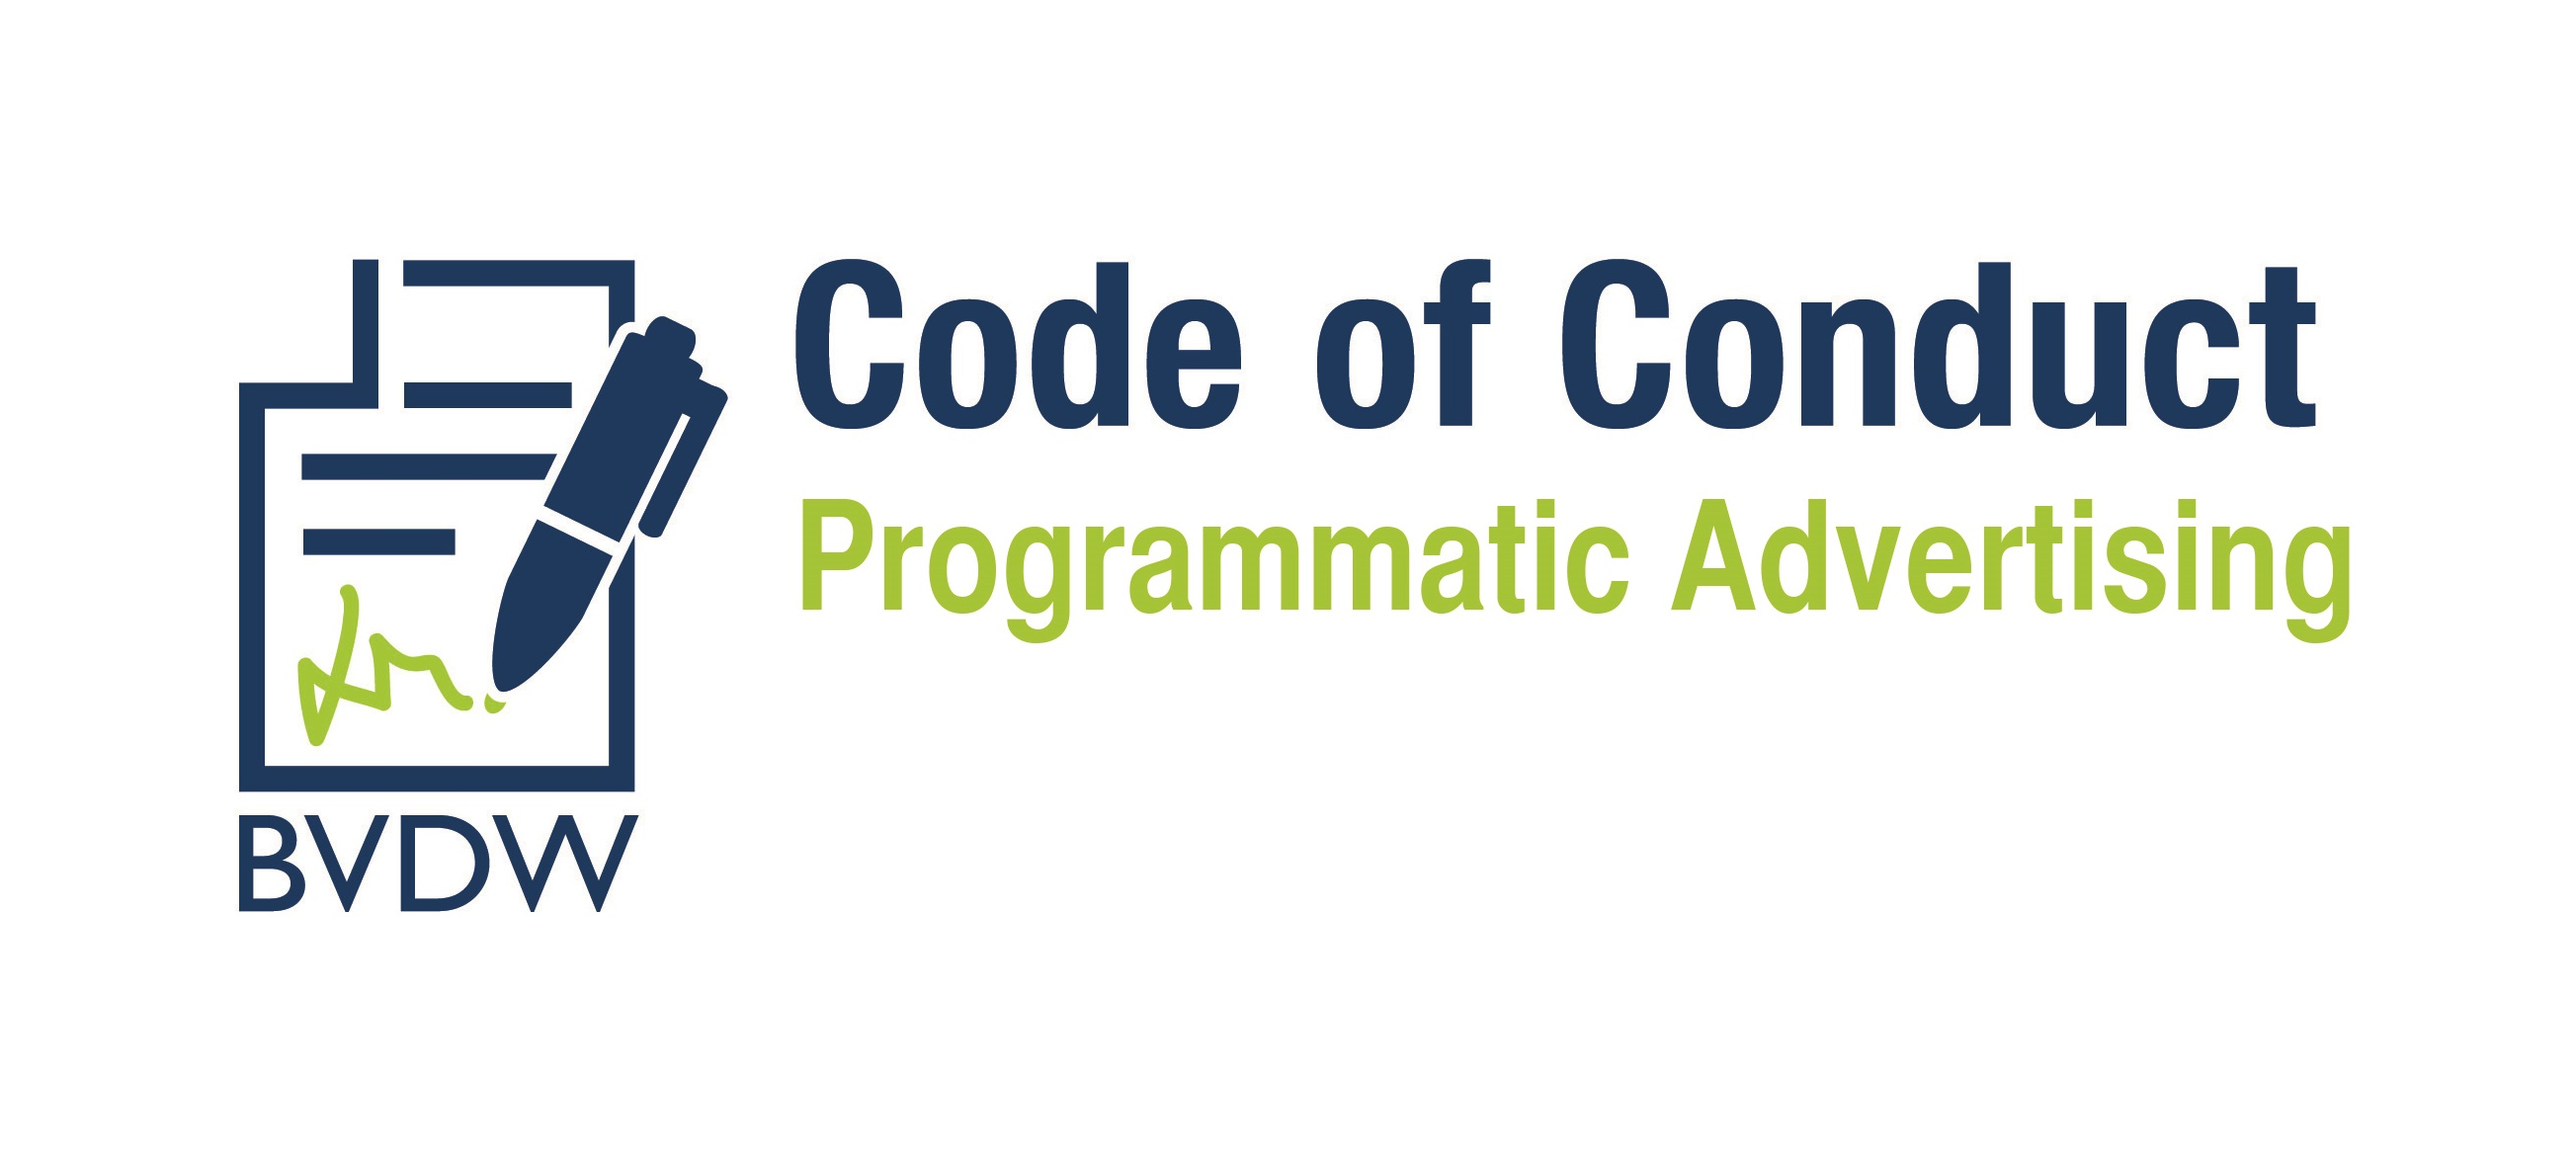 Code of Conduct Programmatic Advertising spacedealer ist beigetreten